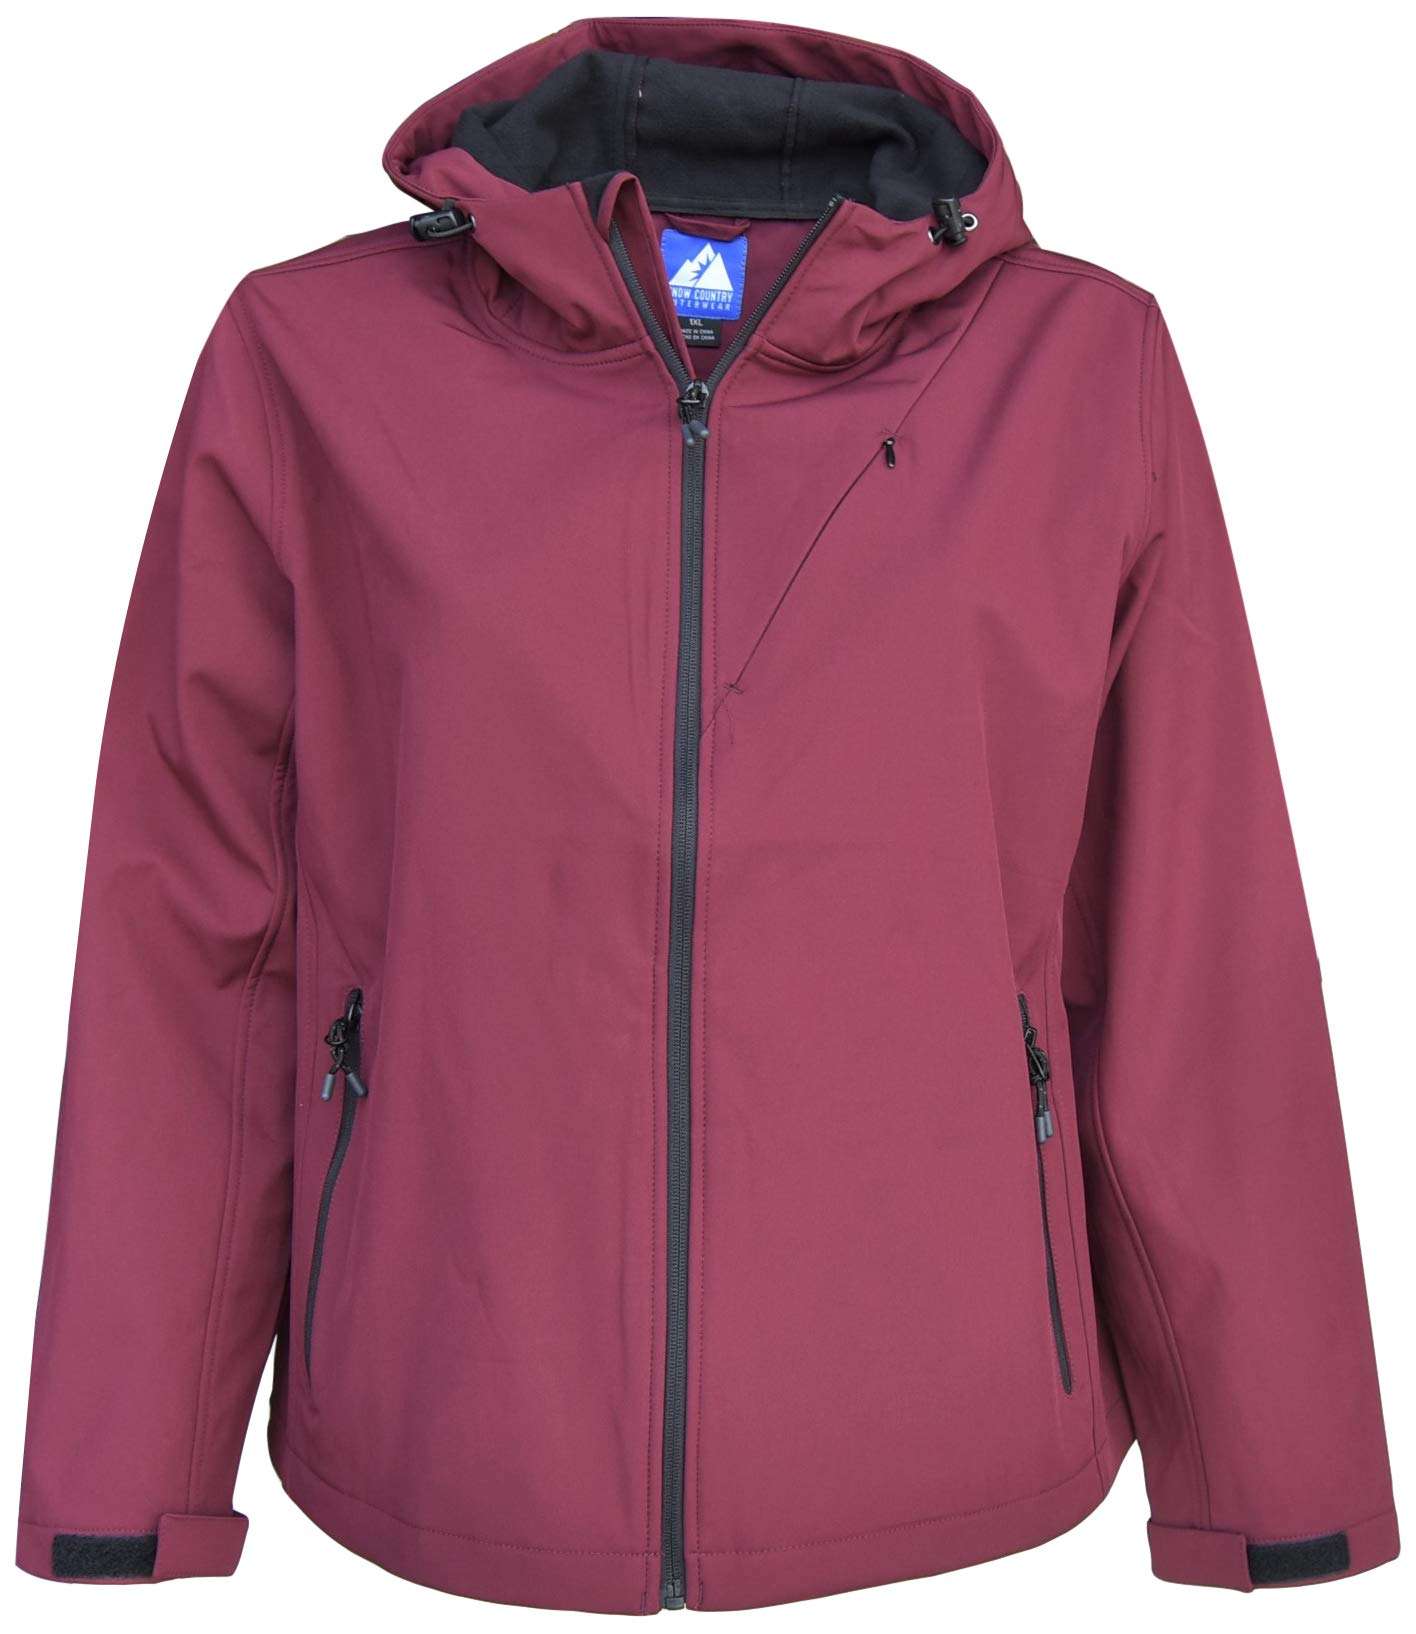 Snow Country Outerwear Women's Plus Size 1X-6X Micro Fleece Soft Shell Jacket Coat